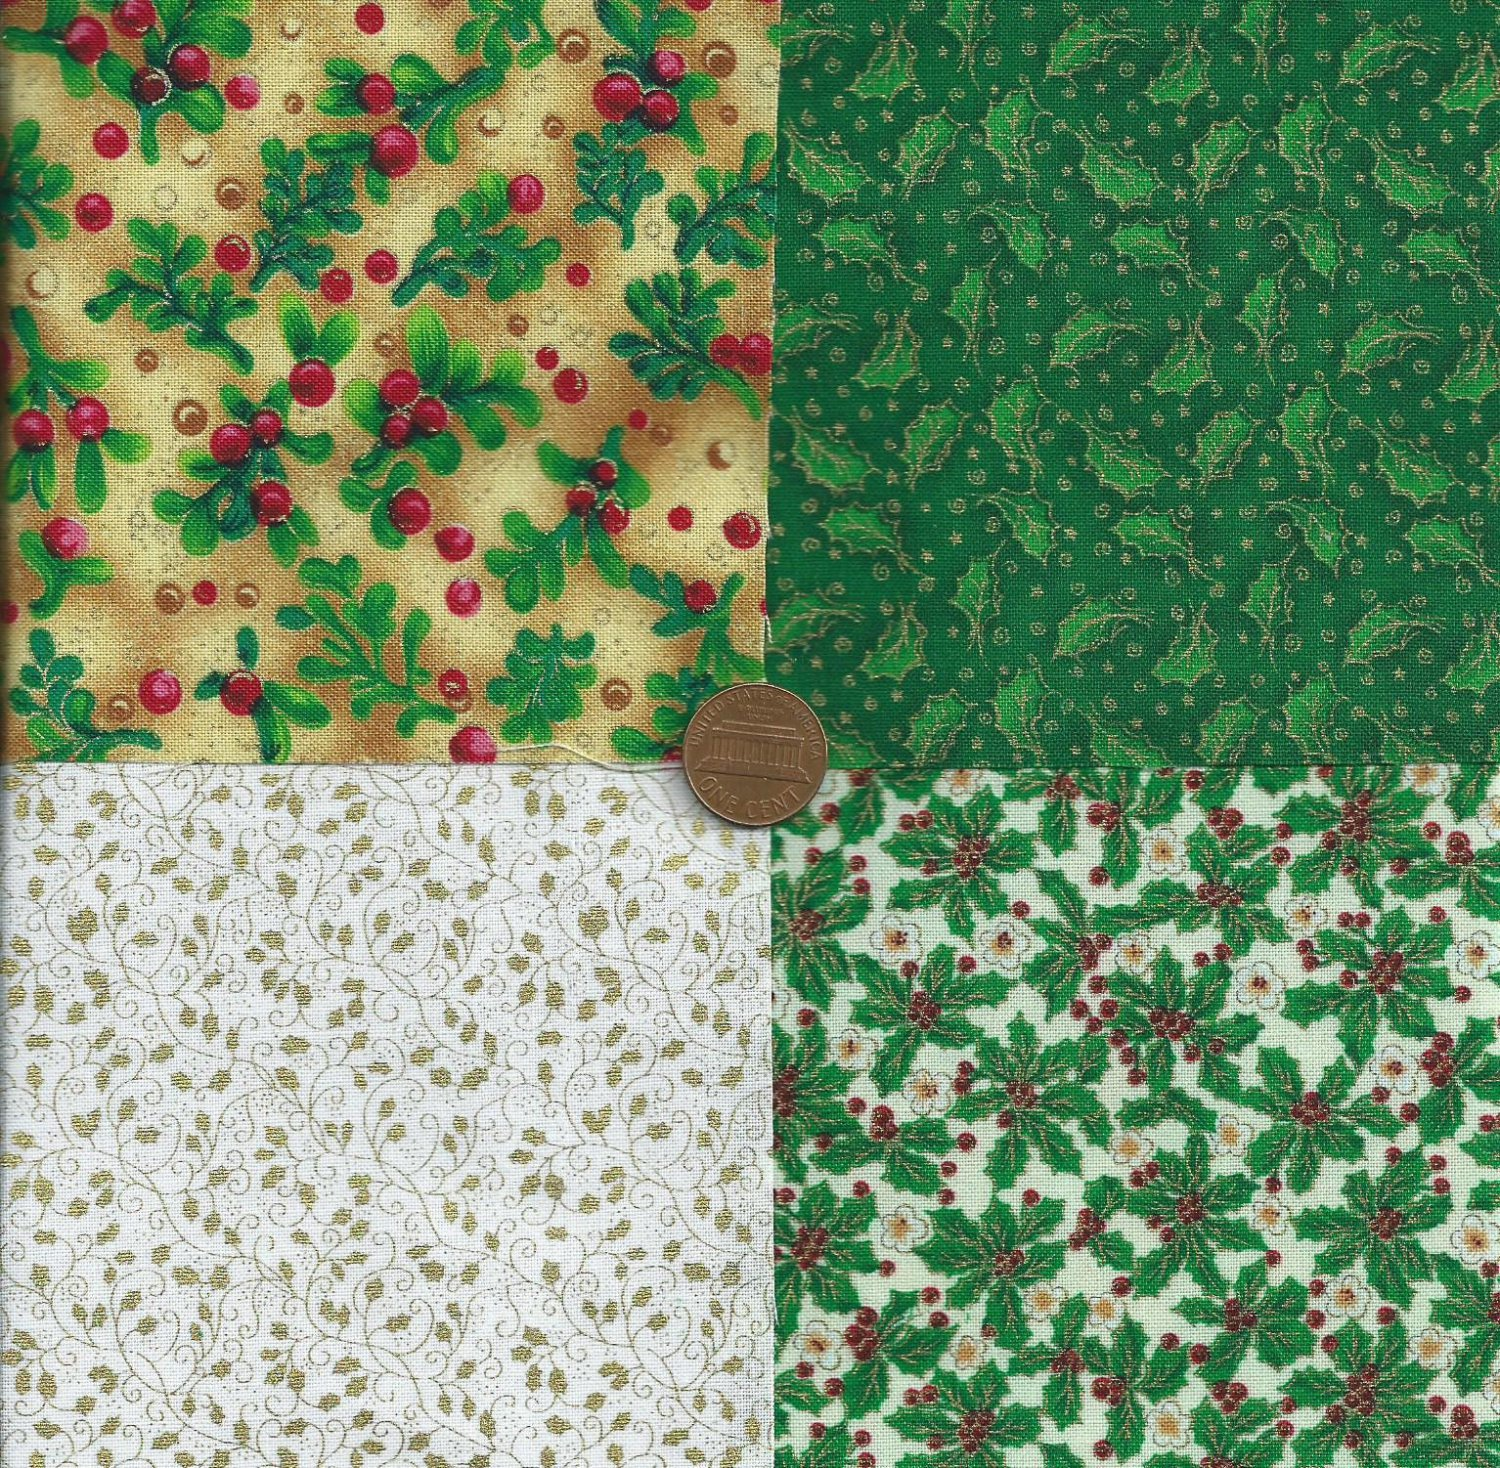 Ivy Fabric Leaves 4 inch Fabric Quilt Squares Multi-Color Block zs1